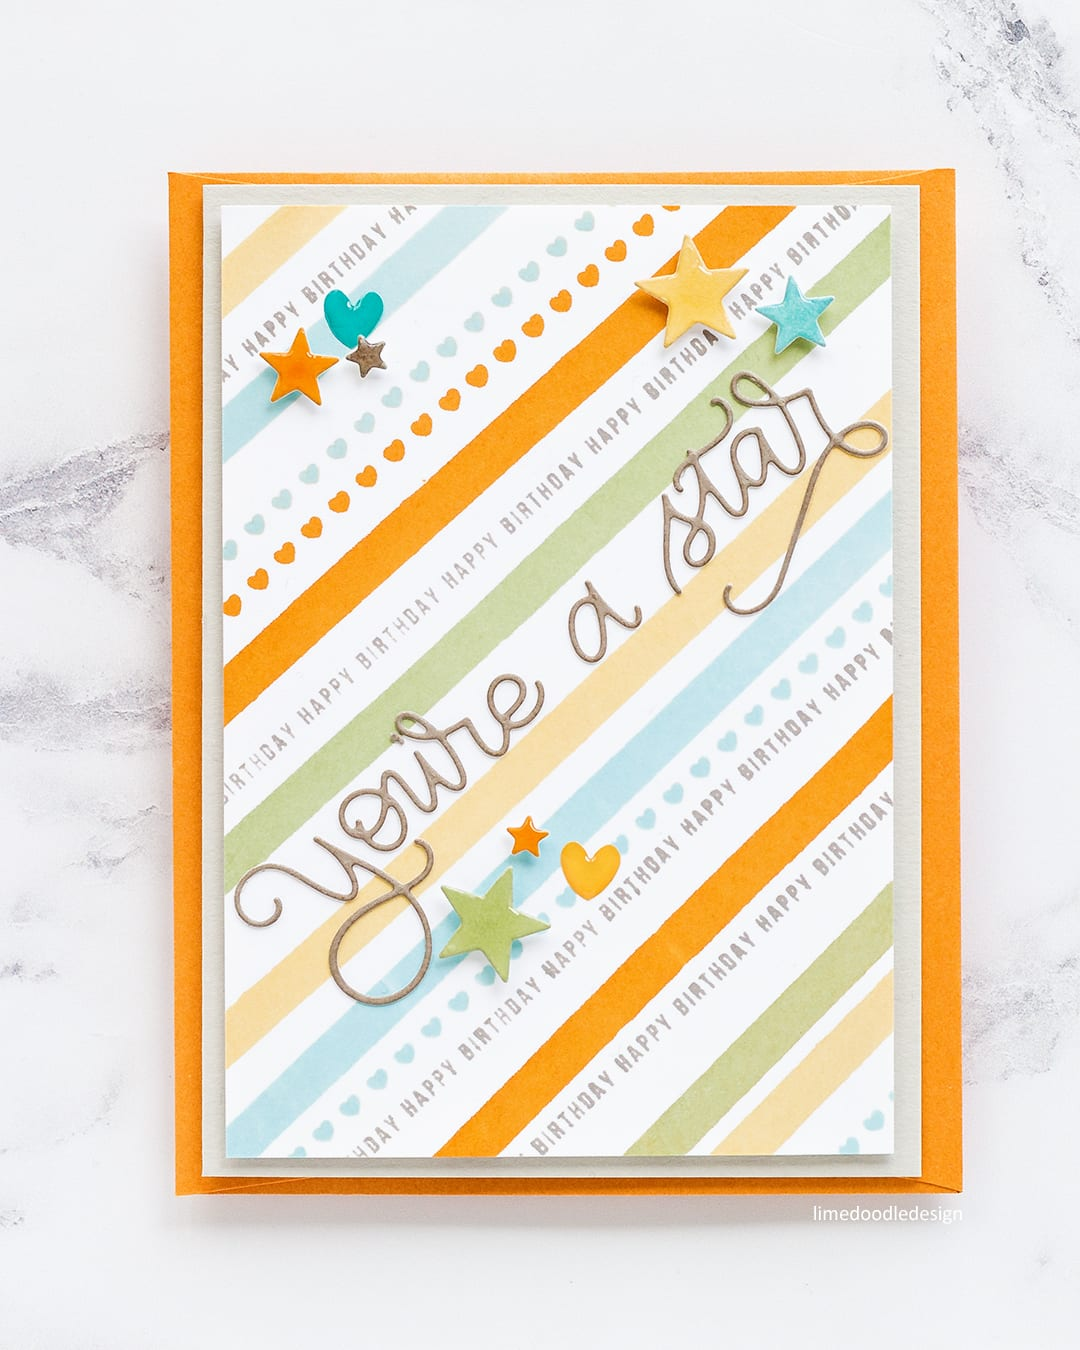 Stamped striped and plaid backgrounds with a few simple die cuts to embellish make great boys cards. Find out more about these handmade cards by Debby Hughes here: https://limedoodledesign.com/2017/08/stamped-striped-plaid-backgrounds/